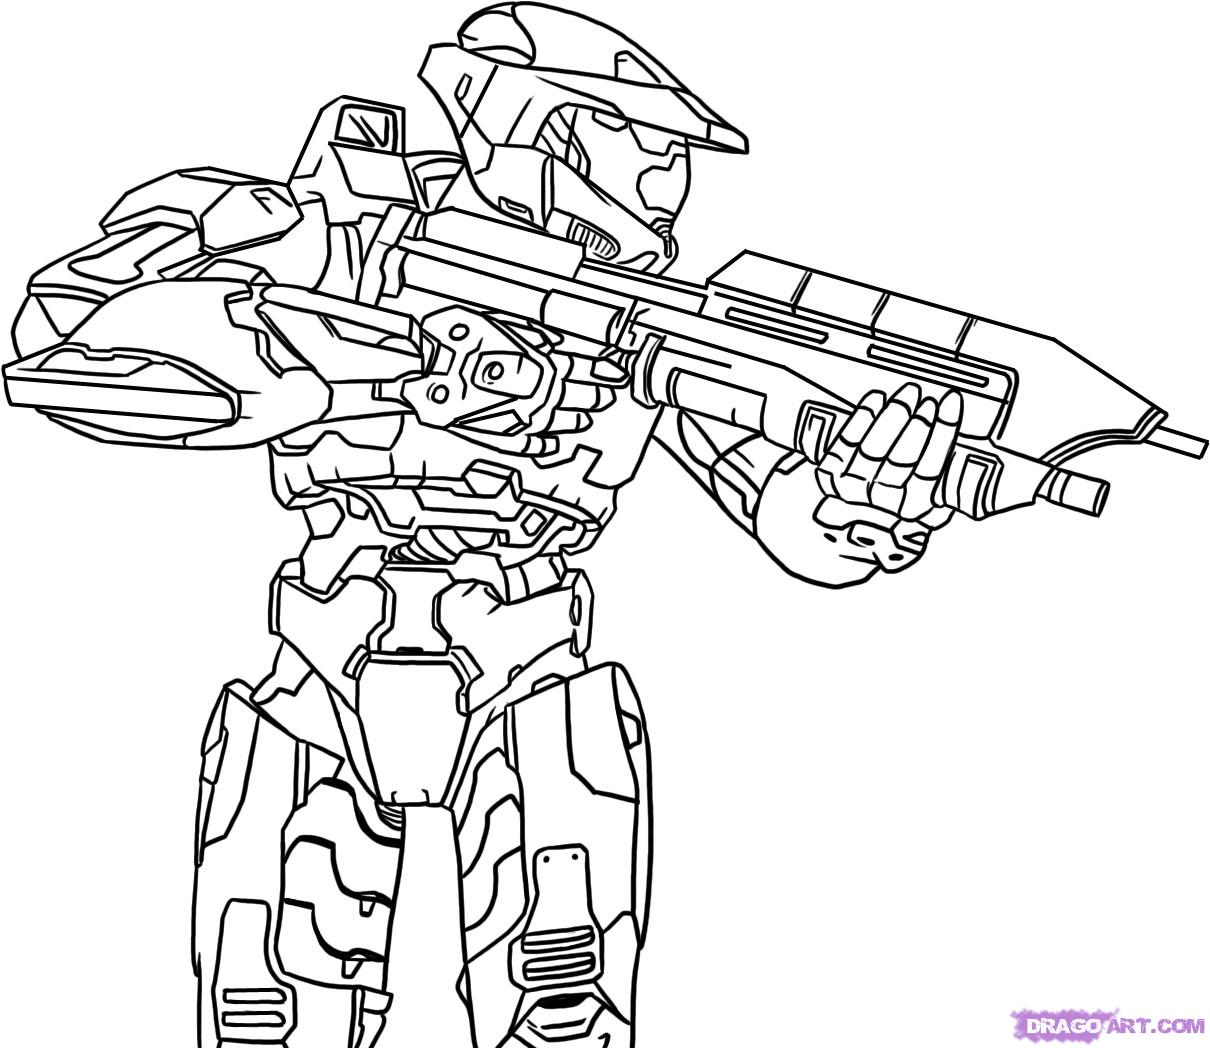 Halo Reach Mountains coloring #17, Download drawings